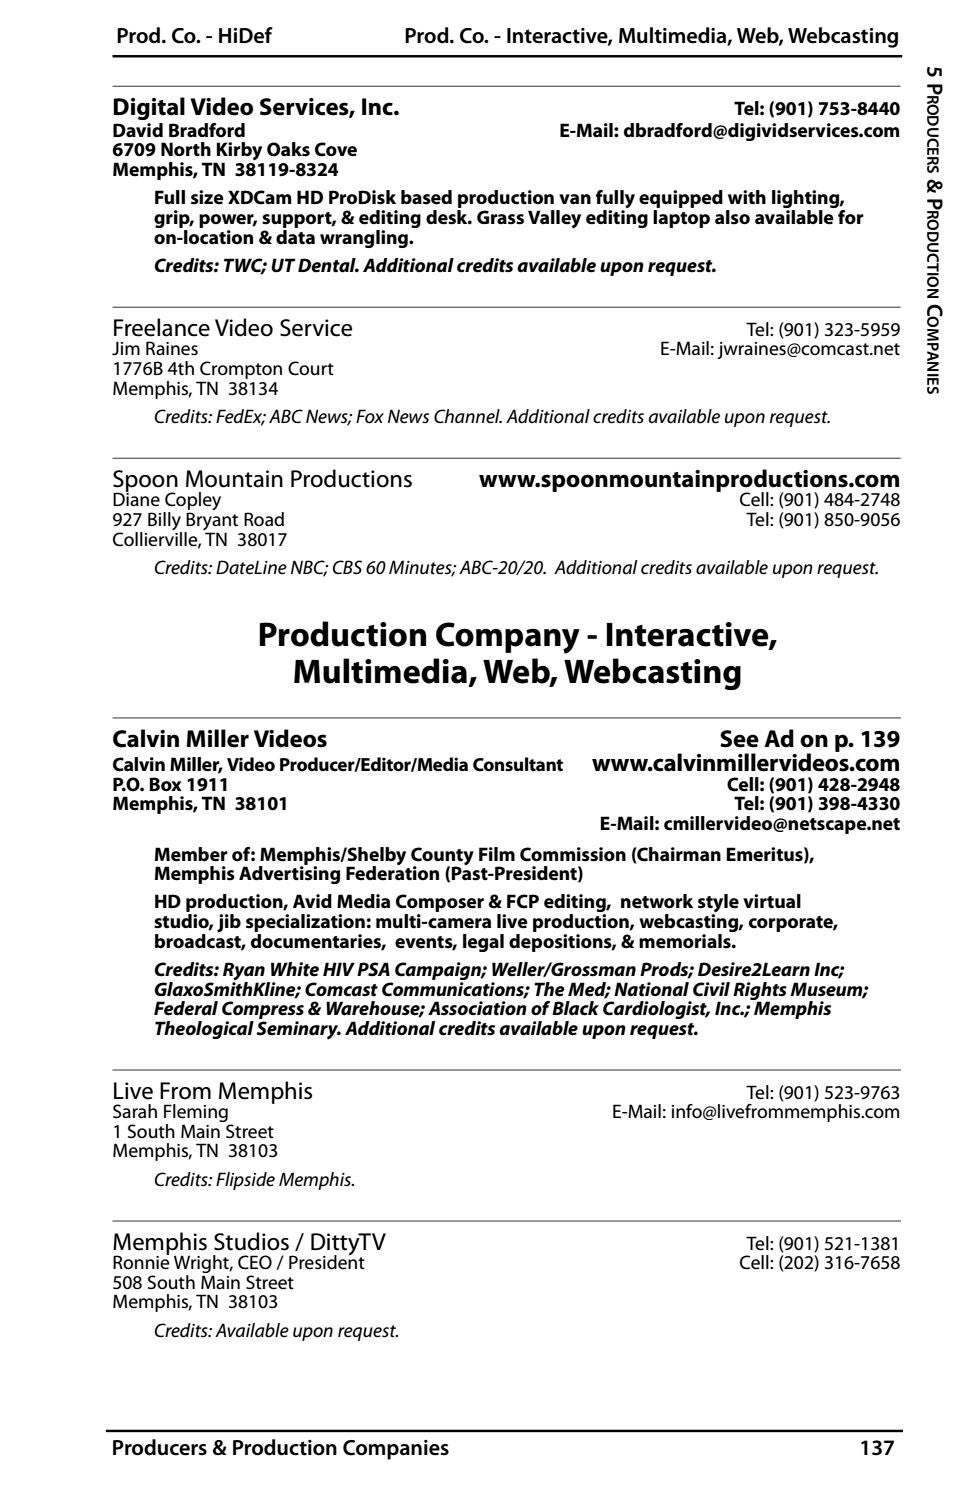 Memphis & Shelby County Film/TV Commission Production